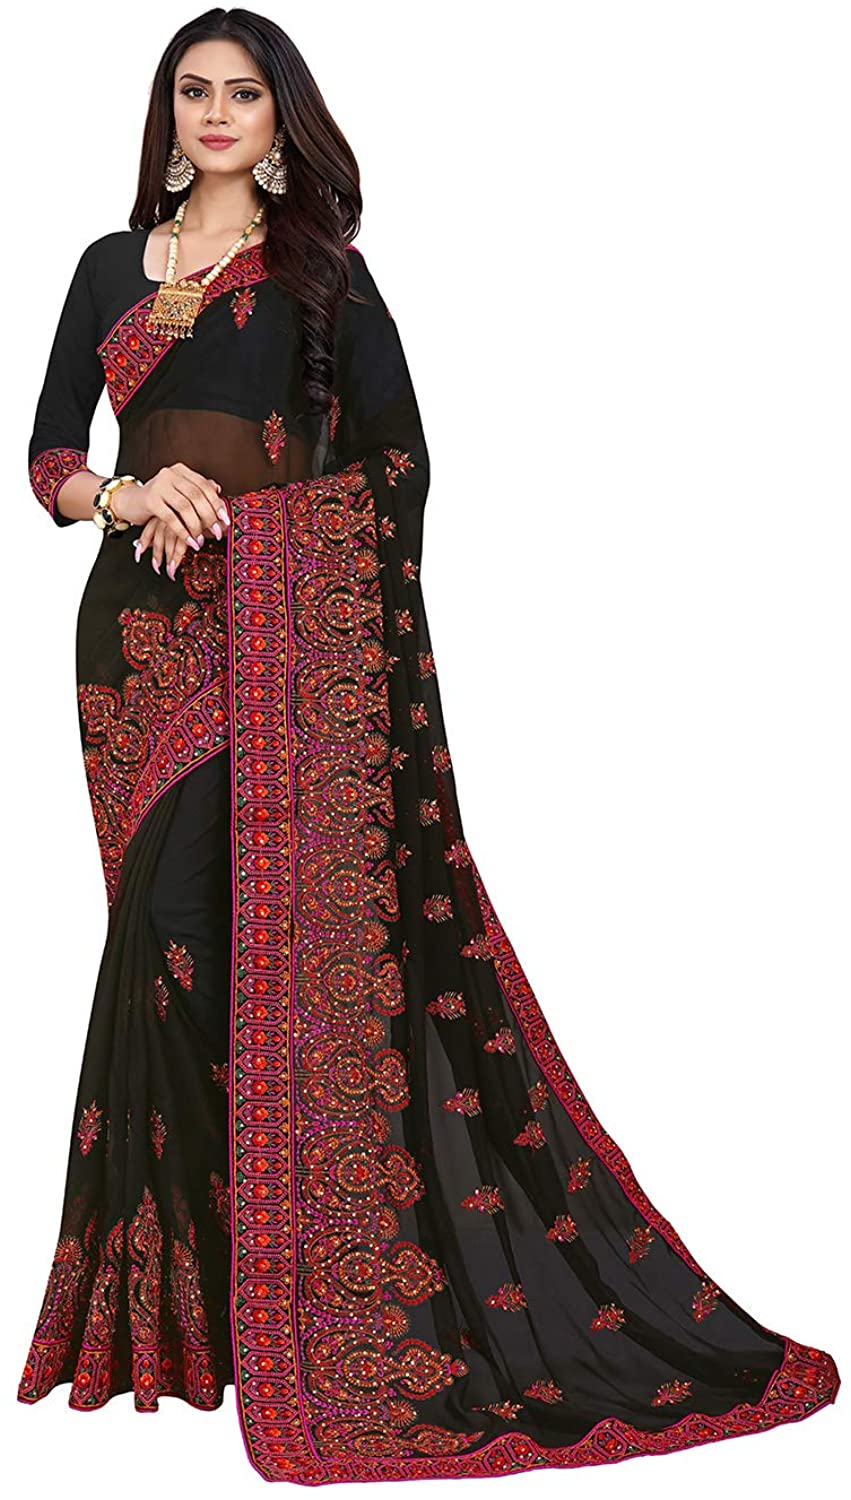 Saree for Women Bollywood Wedding Designer Gorgette Sari with Unstitched Blouse. Black